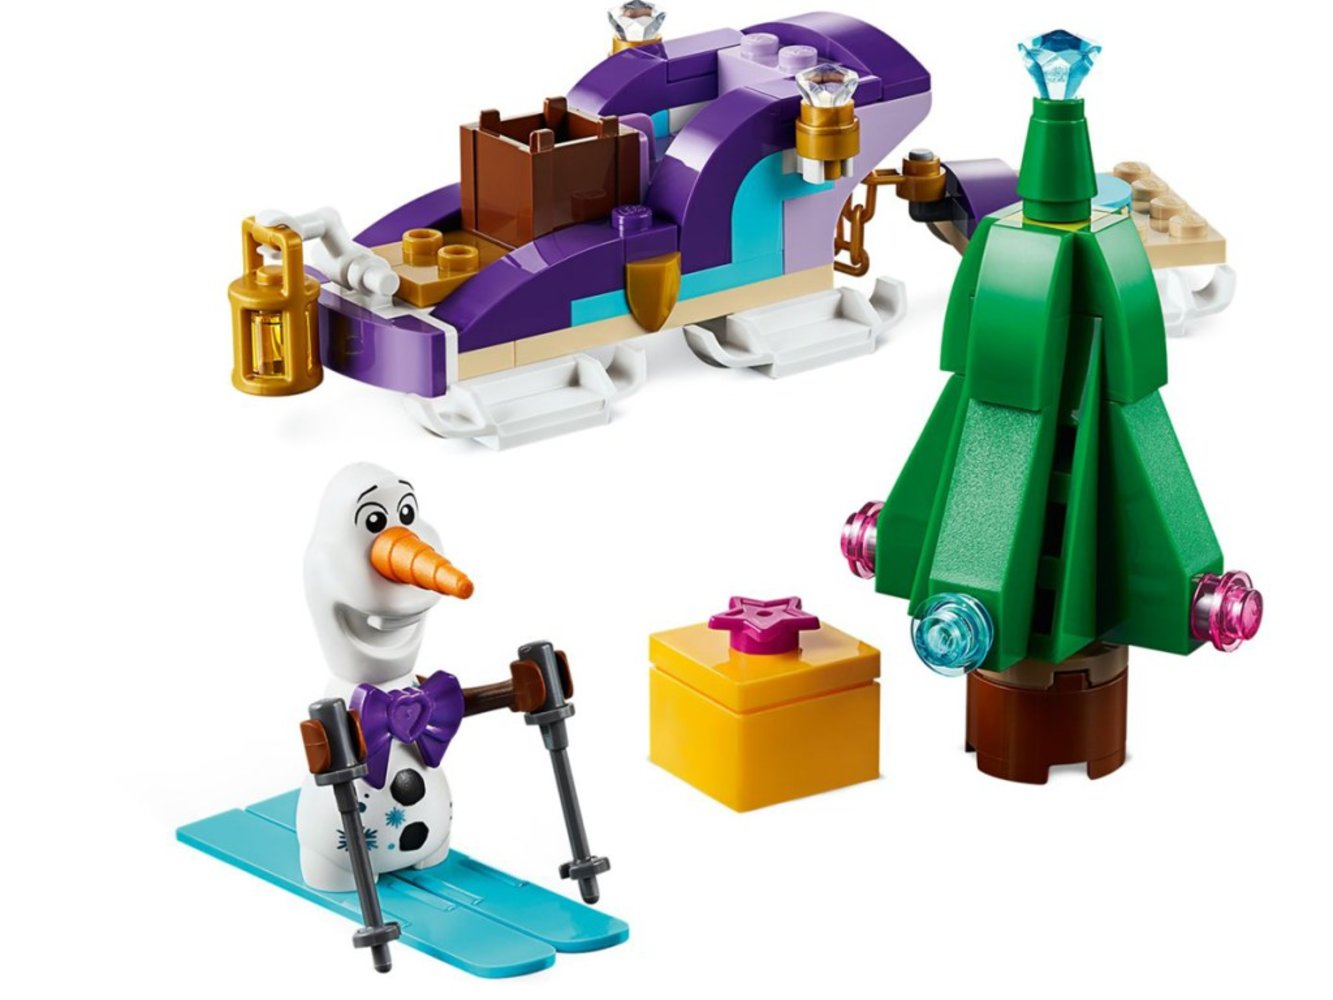 Olaf's Traveling Sleigh